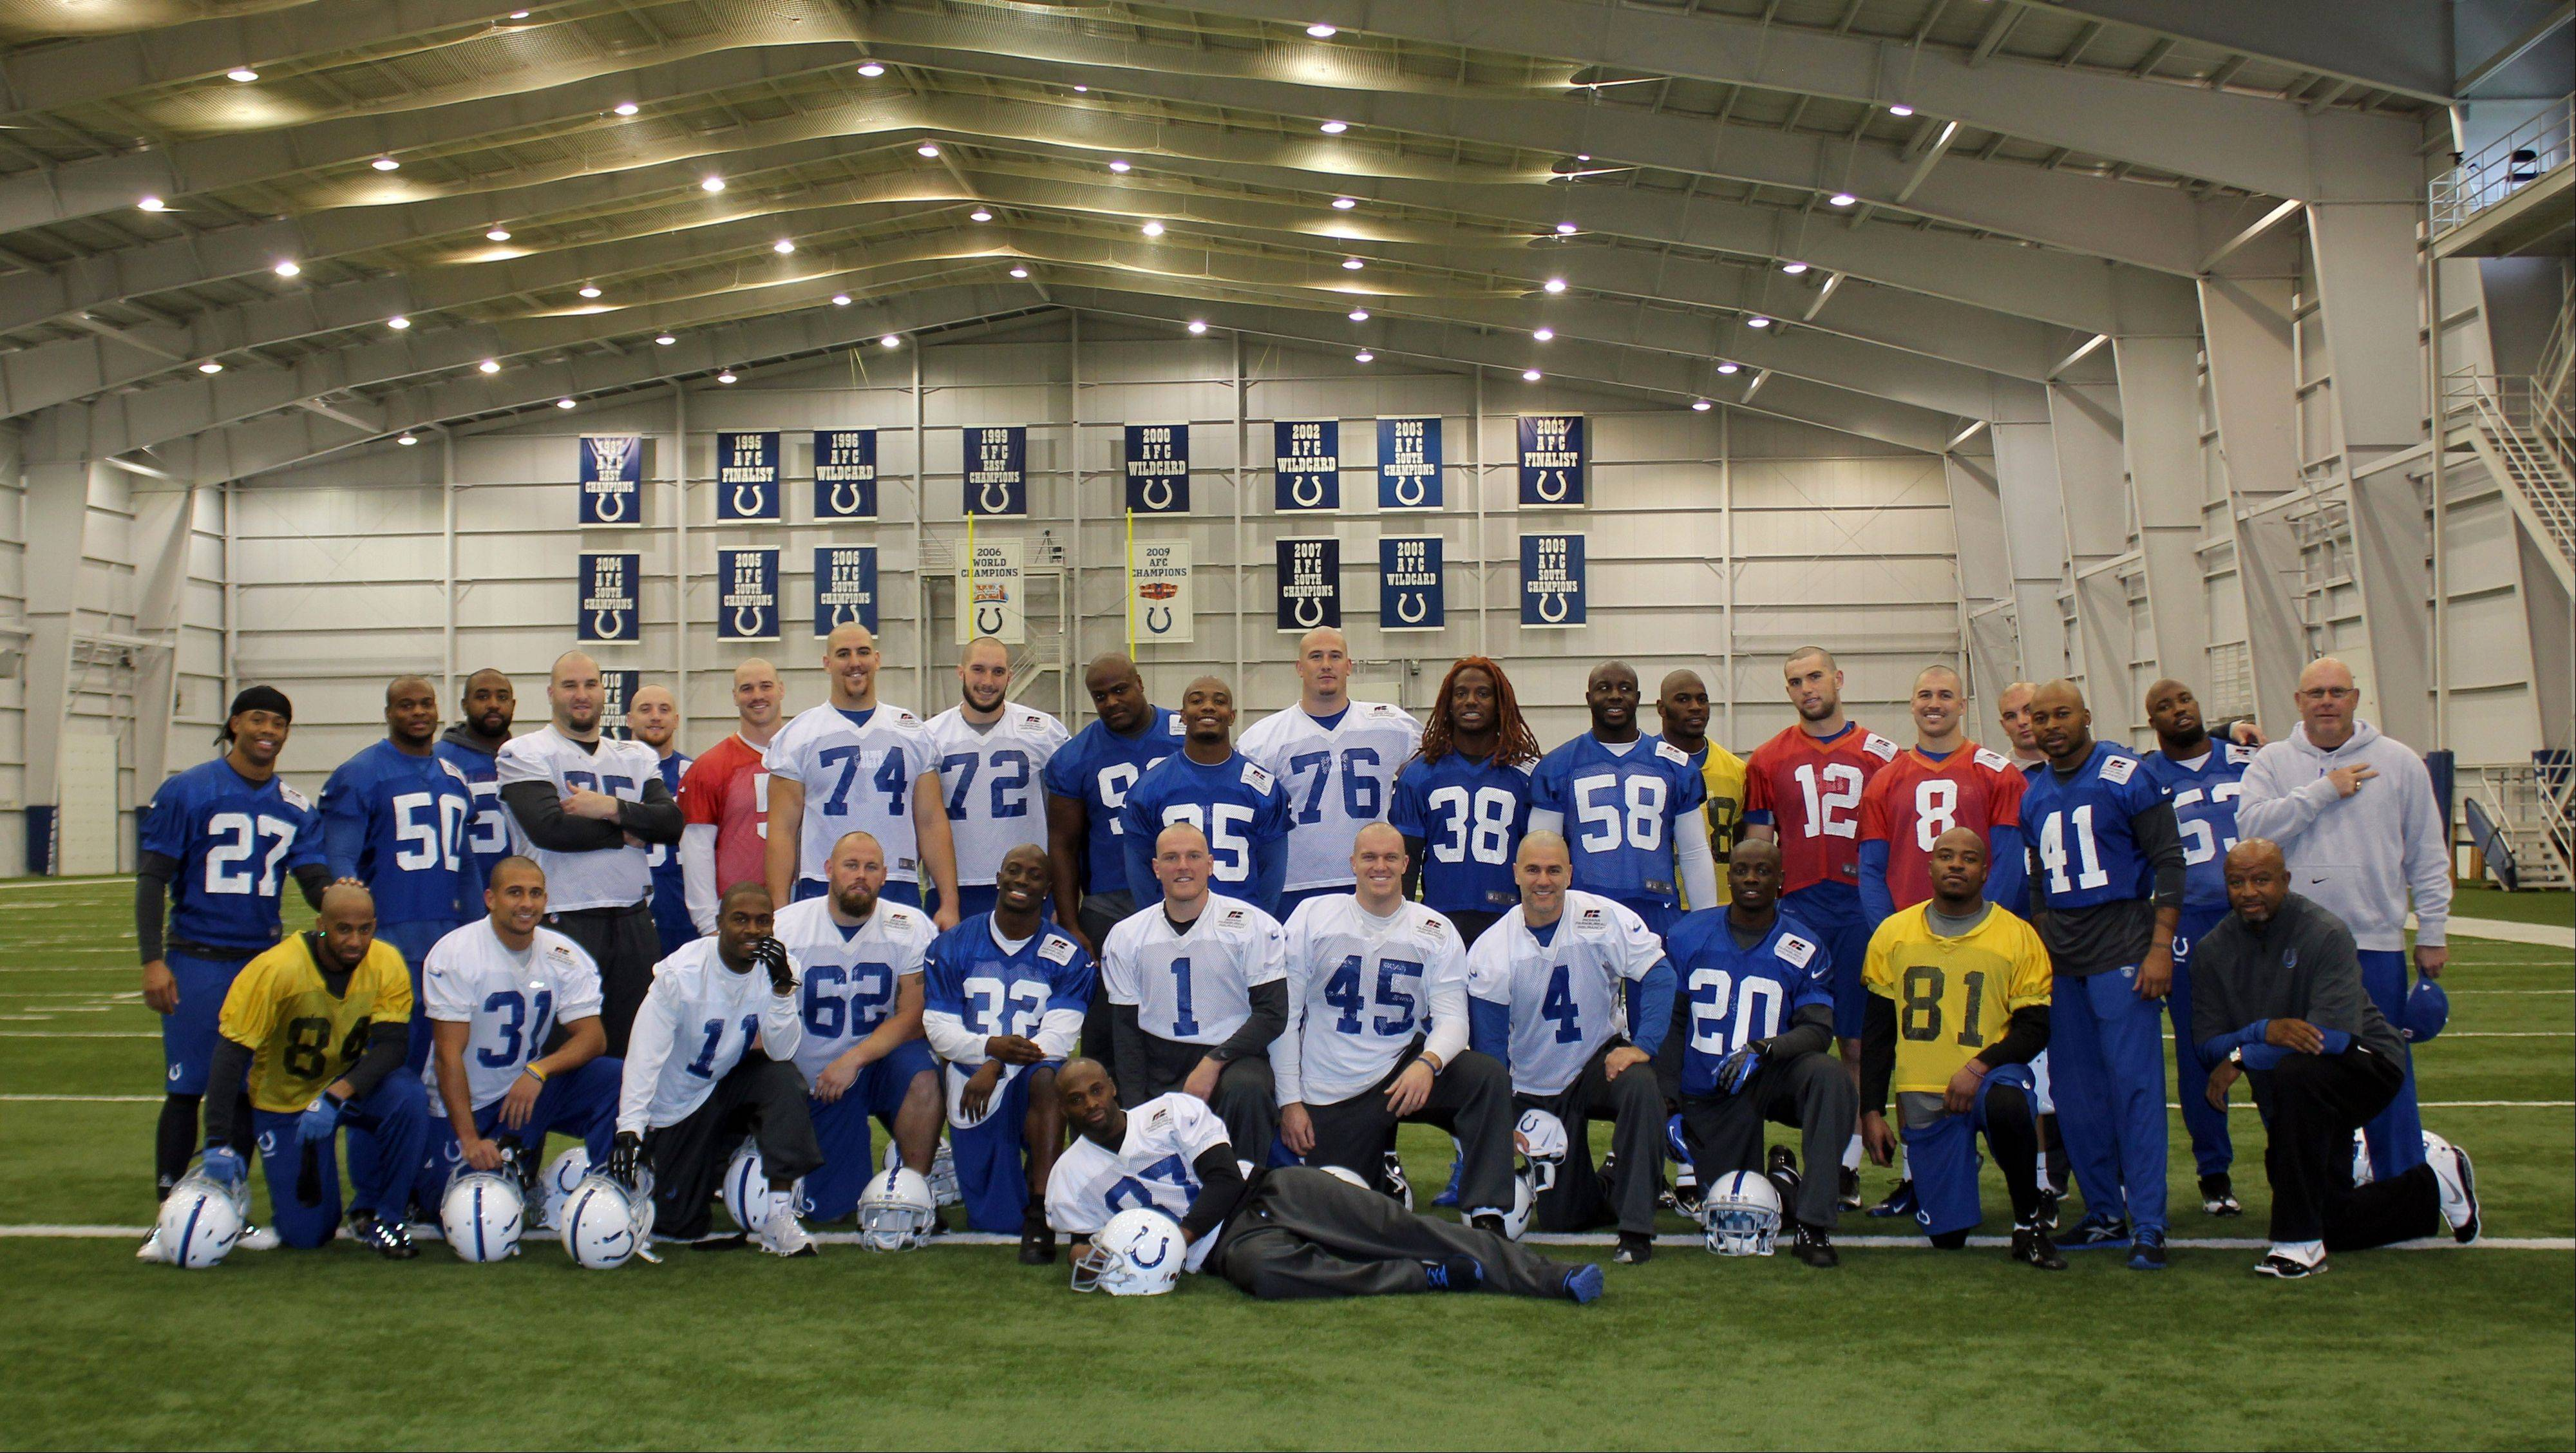 The Colts are going to great lengths to support their ailing coach Chuck Pagano. In a show of support, many players shaved their heads after Tuesday's practice. Pagano lost his hair while undergoing treatment for leukemia.